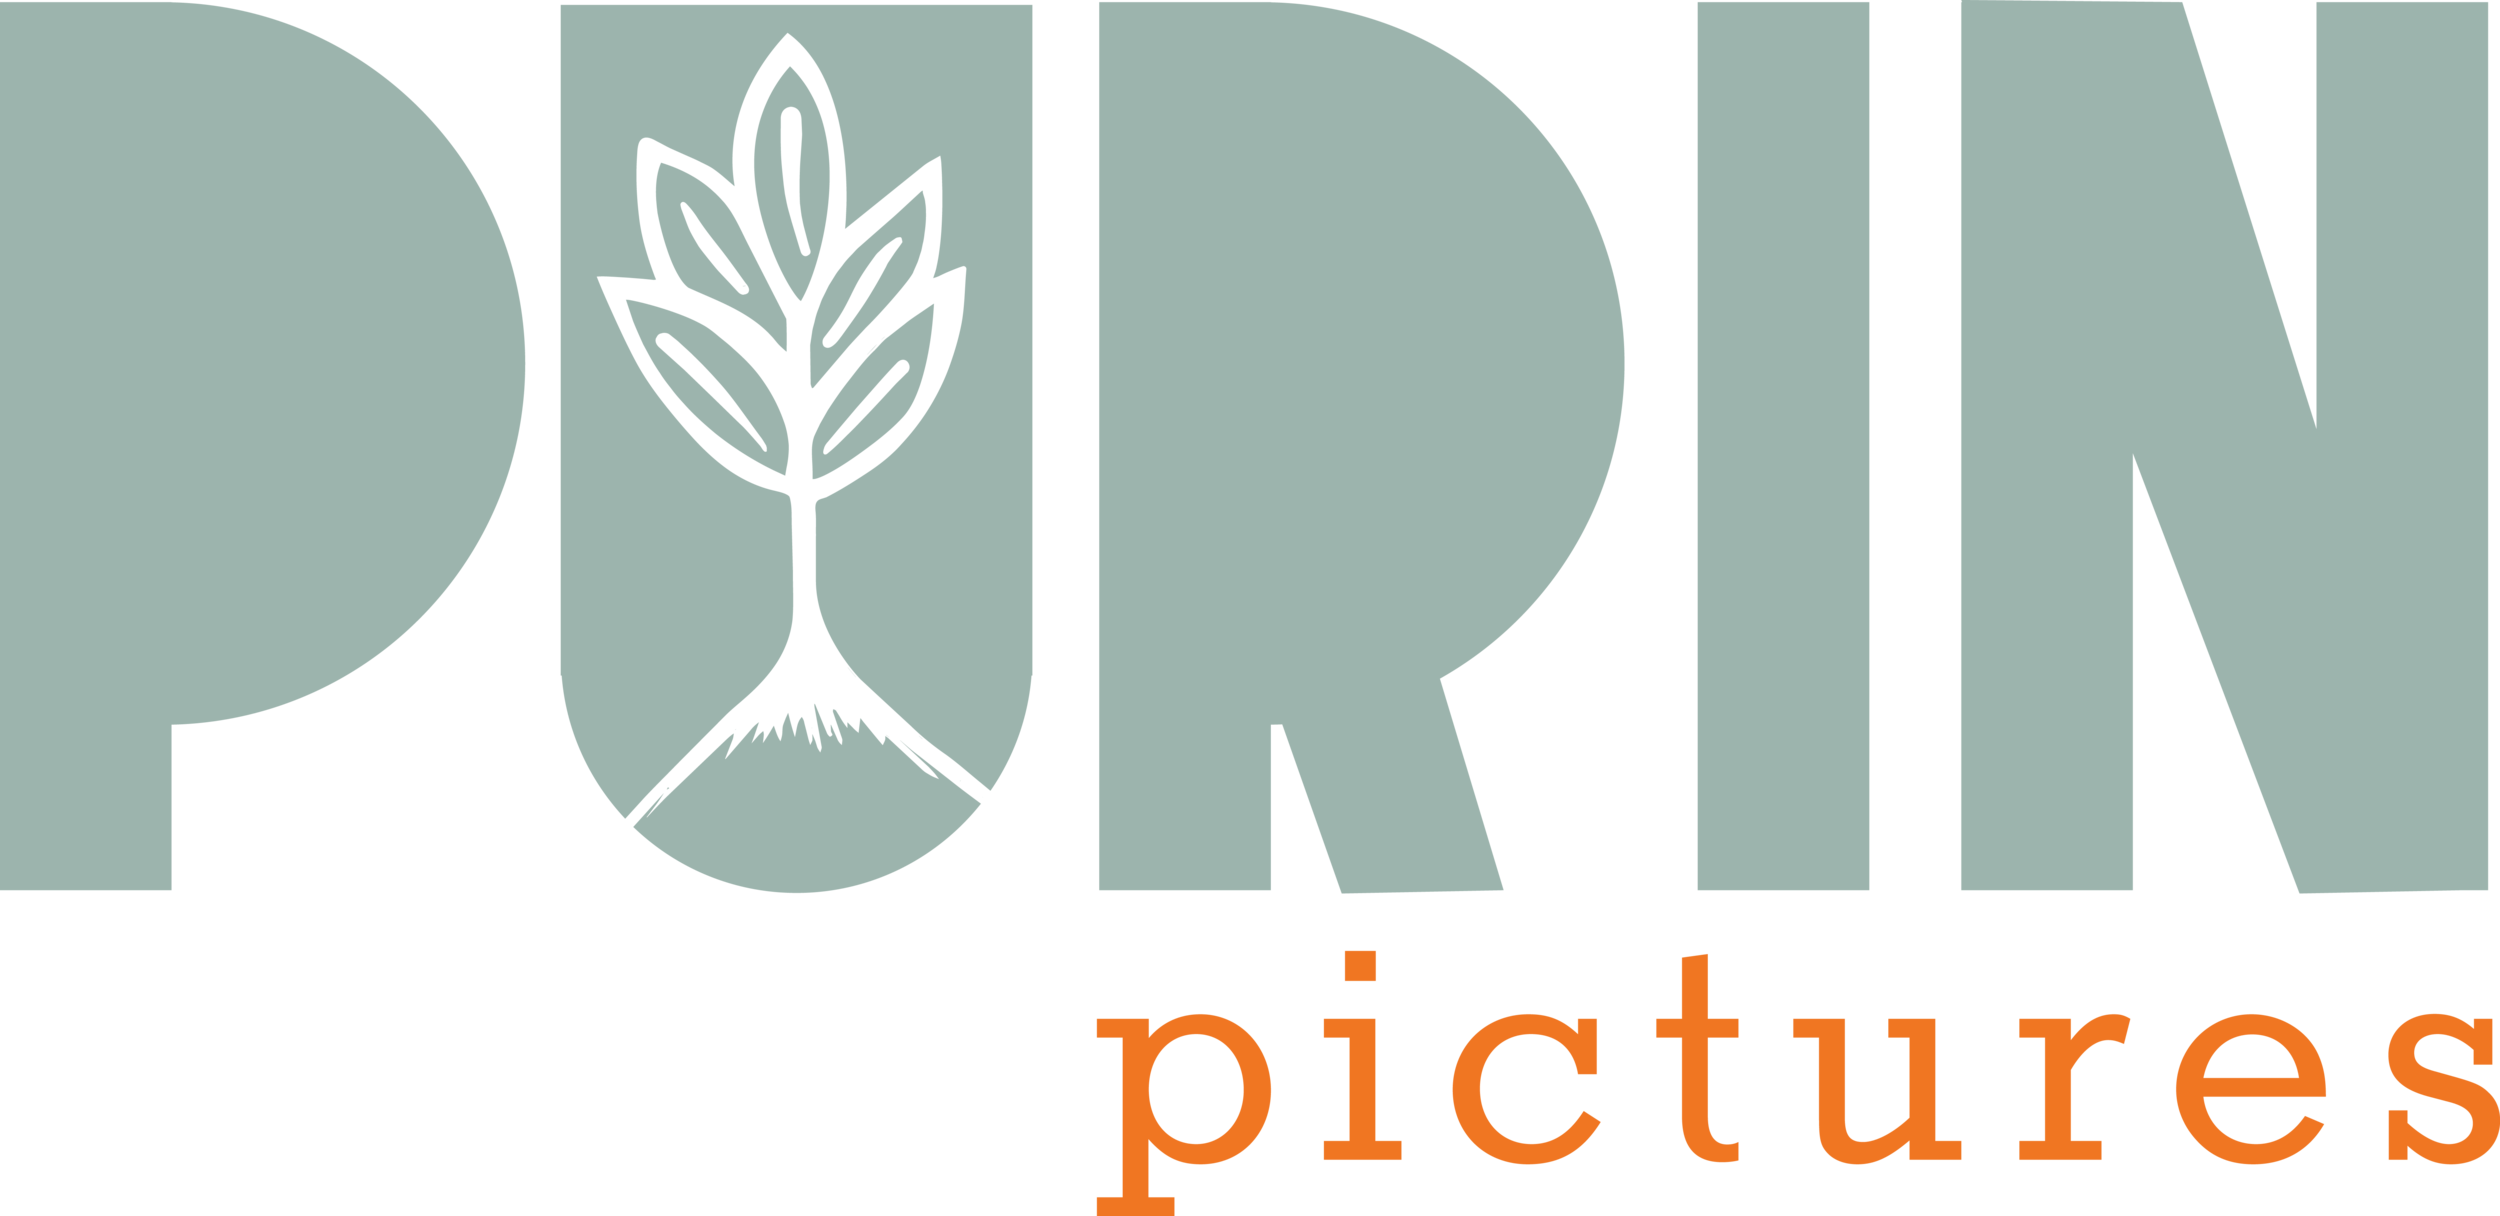 Purin Pictures   is a film fund under Purin Foundation managed by Thailand's Anocha Suwichakornpong and Aditya Assarat. Since 2017, Purin Pictures has supported independent Southeast Asian cinema with the aim of searching for Southeast Asian artists and organizations who are creating unique and essential work.